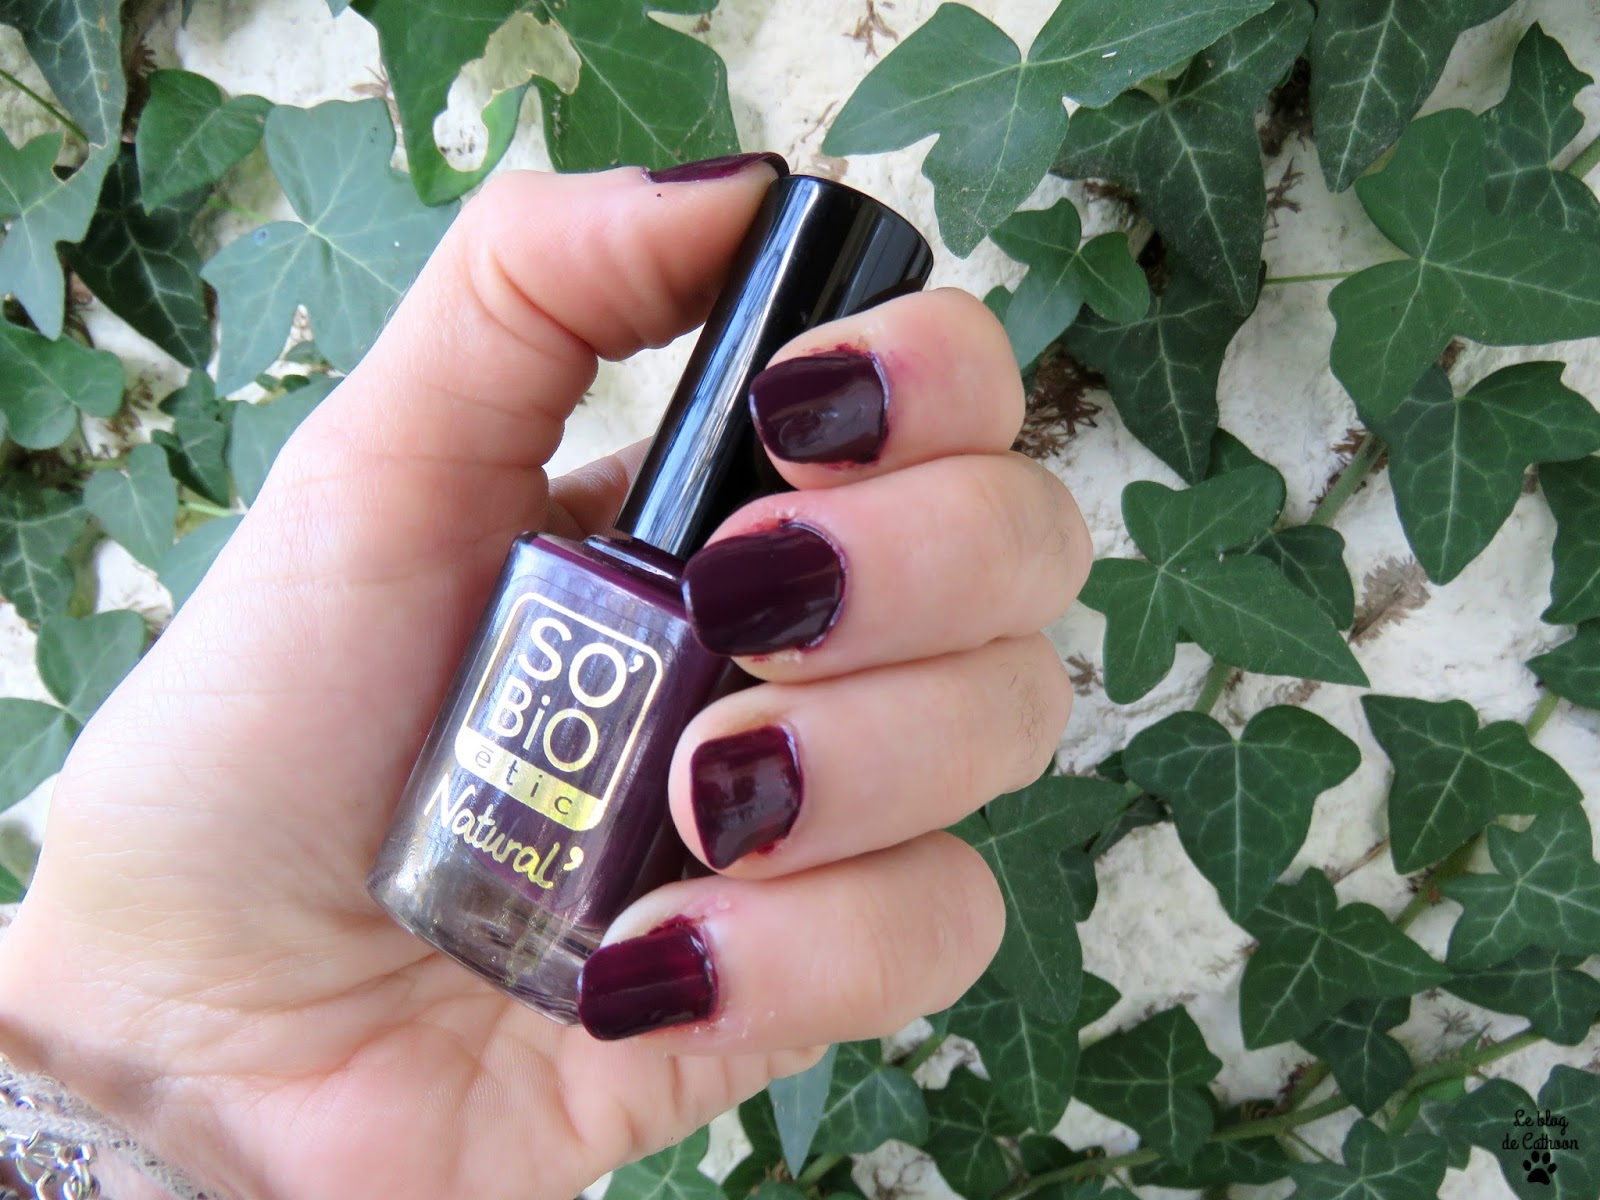 10 Prune Noire - Vernis à Ongles - So'Bio étic Natural'